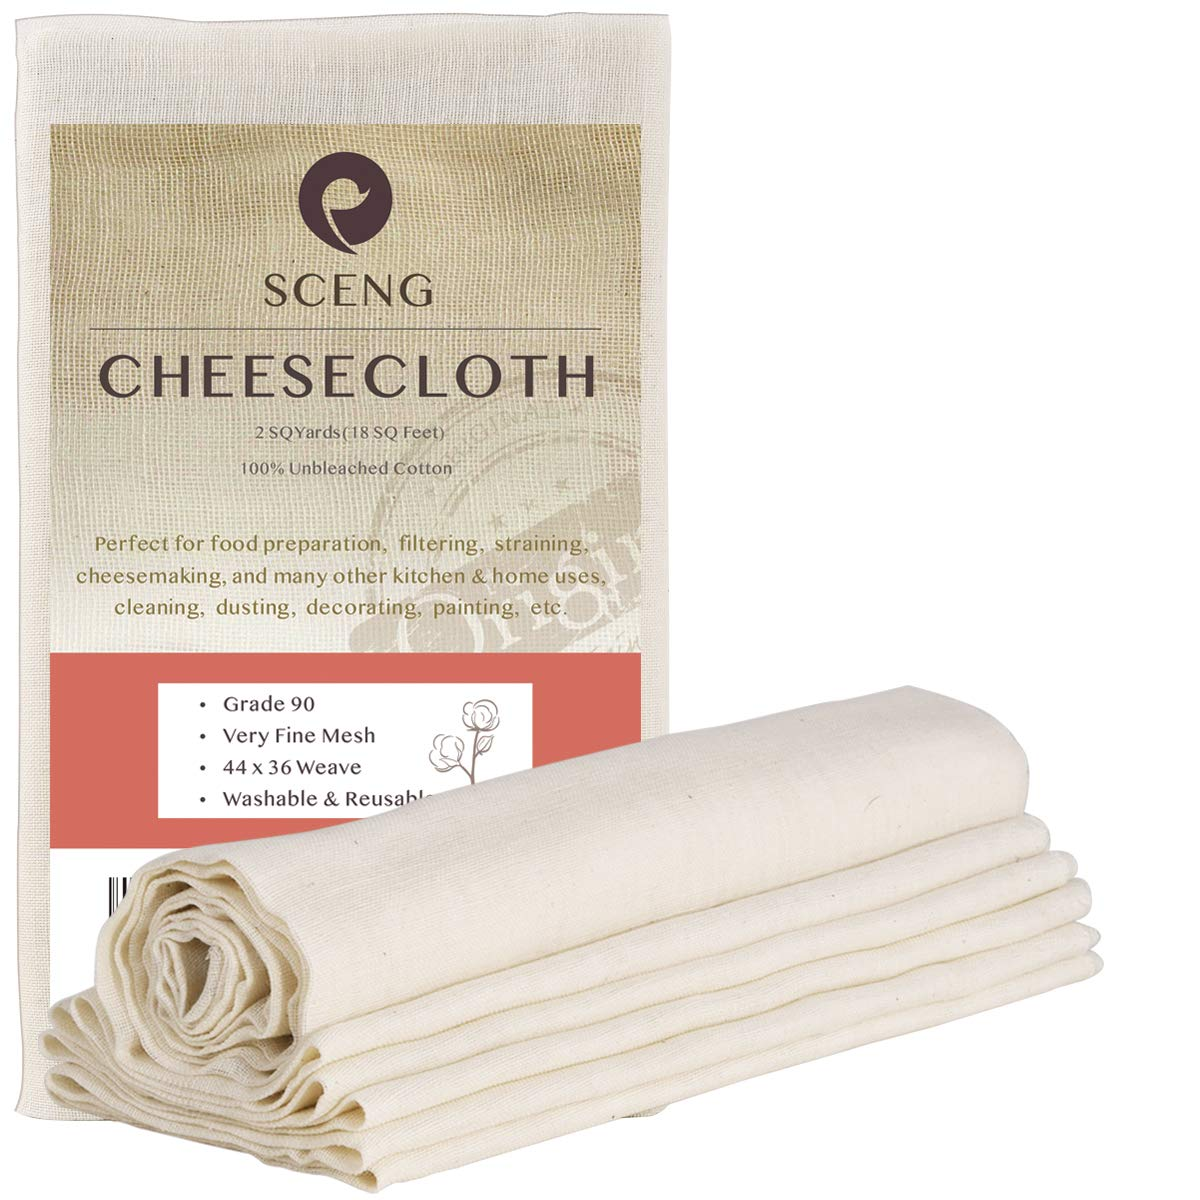 Cheesecloth, Grade 90, 18 Sq Feet, Reusable, 100% Unbleached Cotton Fabric, Ultra Fine Cheesecloth for Cooking-Nut Milk Bag, Strainer Filter (Grade 90-2 Yards)